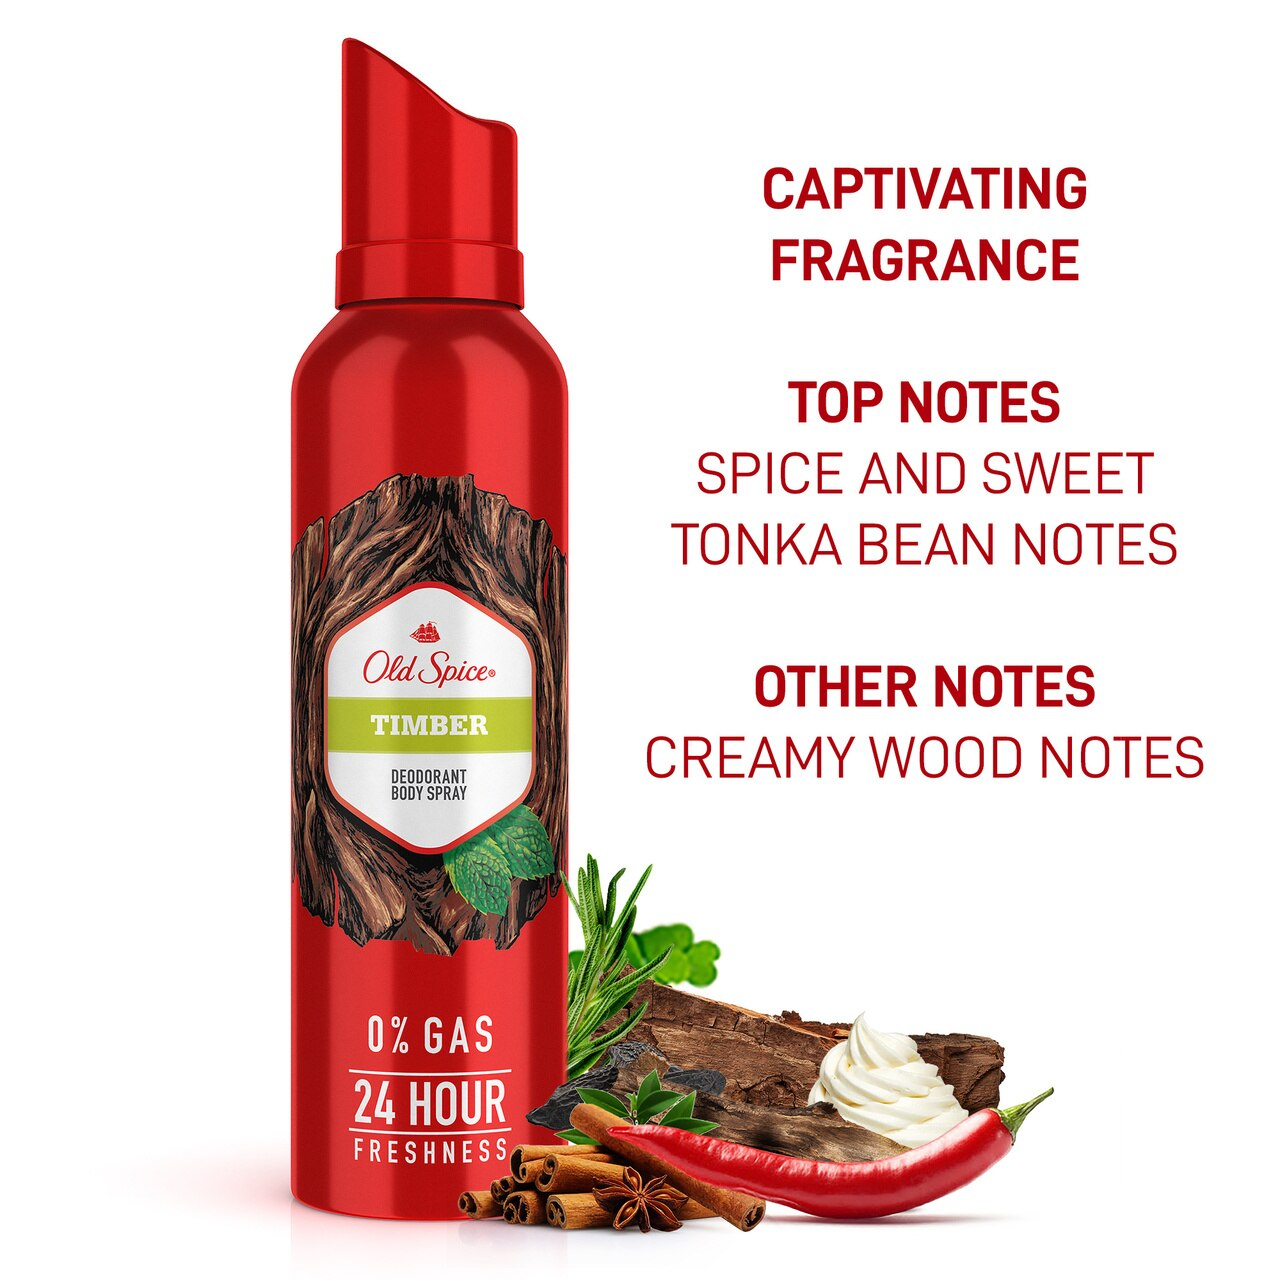 Old Spice- Timber No Gas Deodorant Body Spray Perfume, 140 ml